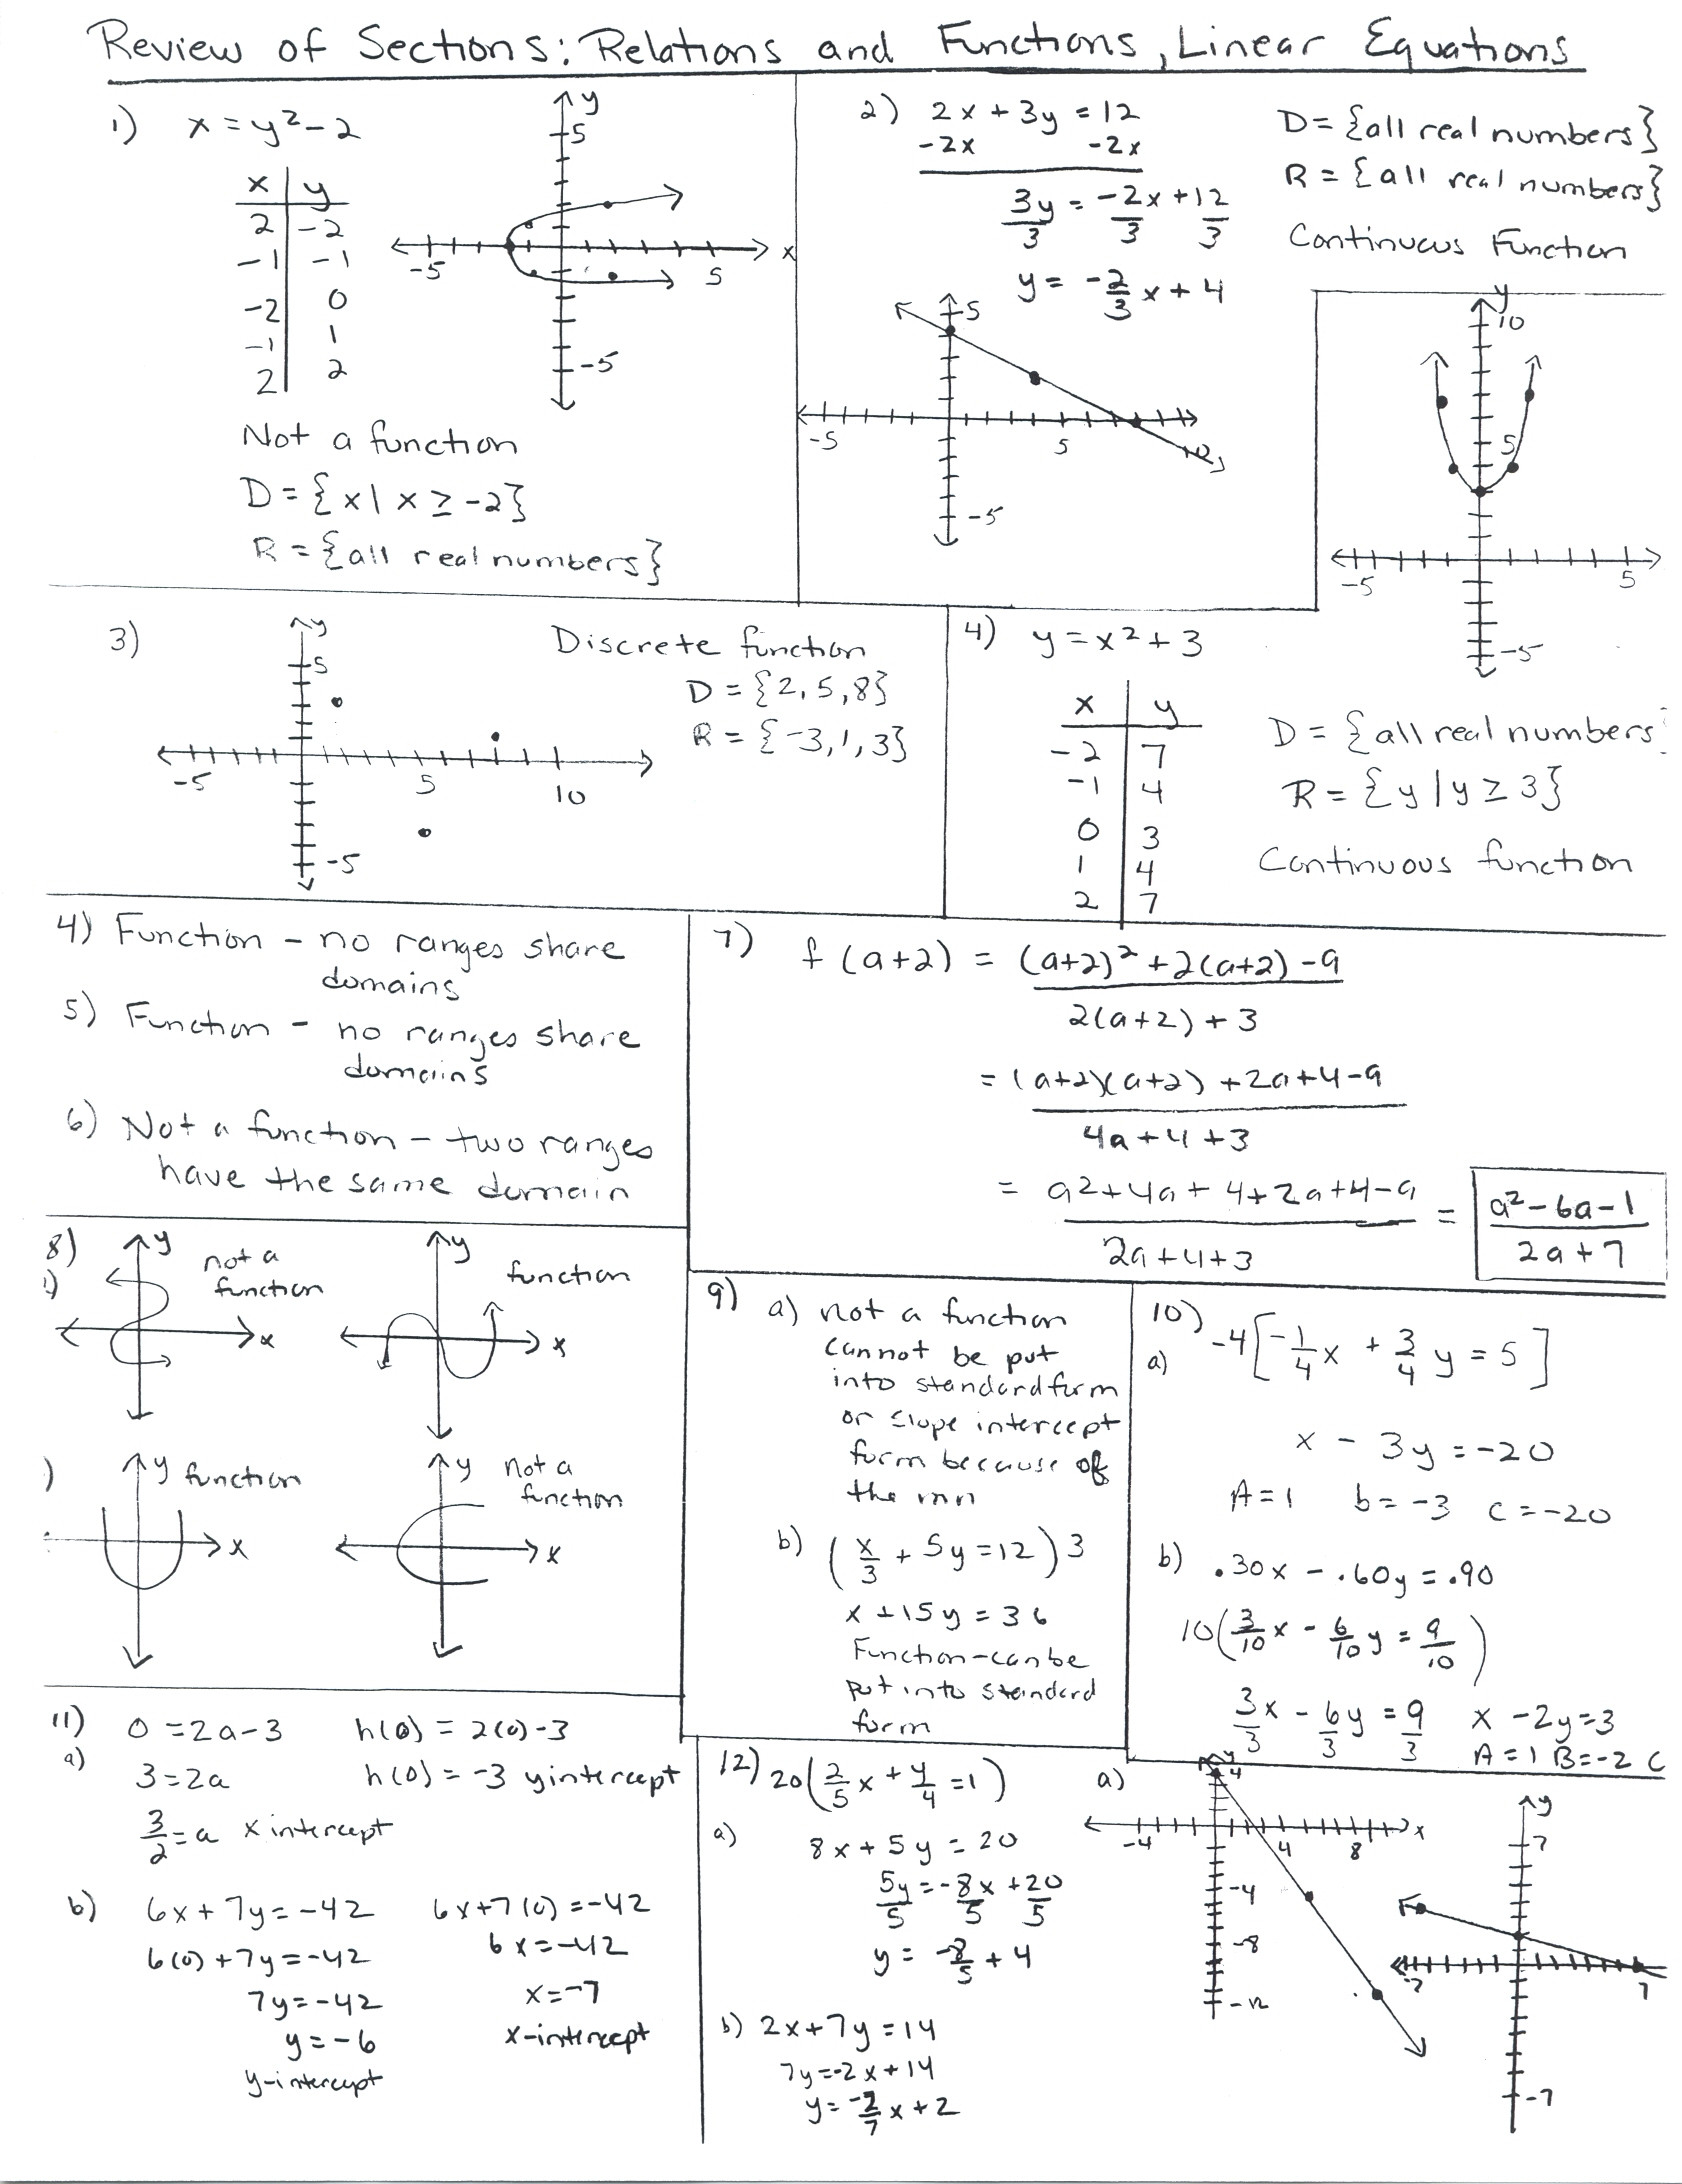 Linear Equations Worksheet with Answers